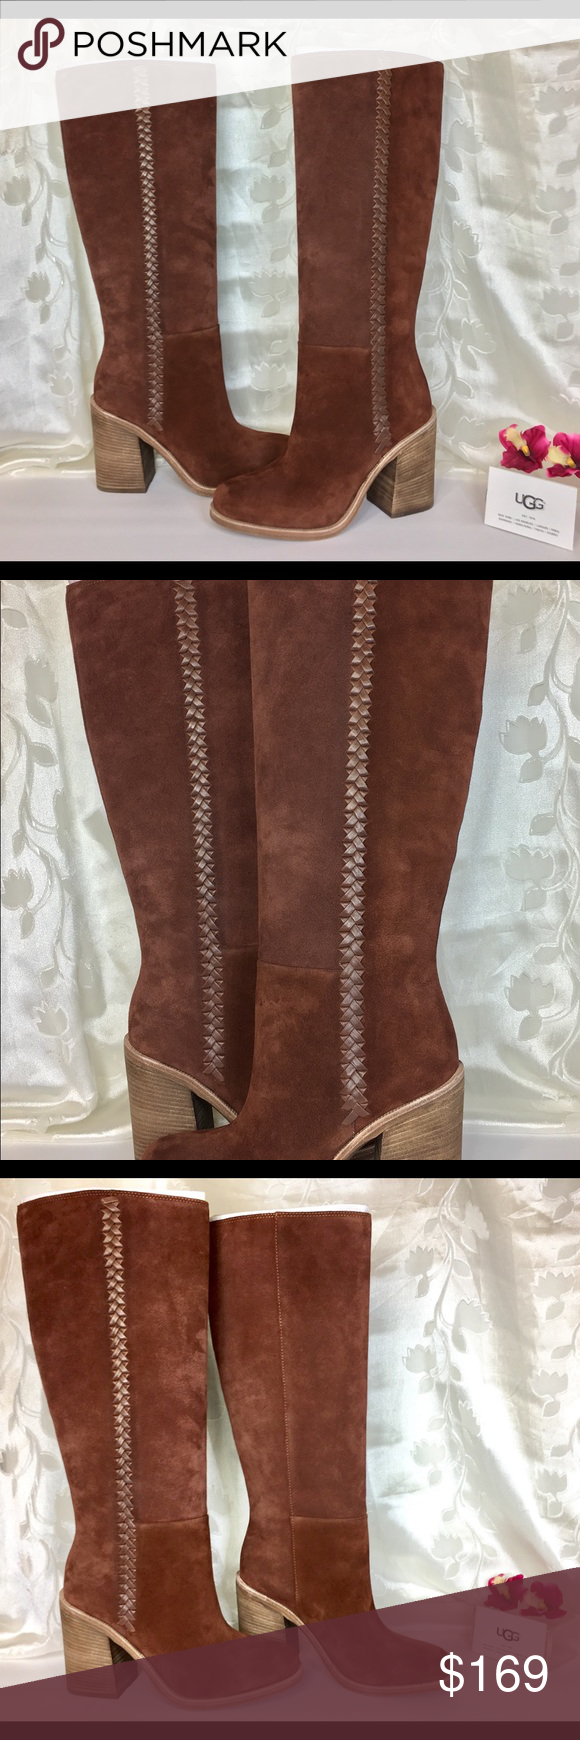 5e8c824bae0 UGG New MAEVA High Suede Boot List 324 1018941 8 Brand new in the ...